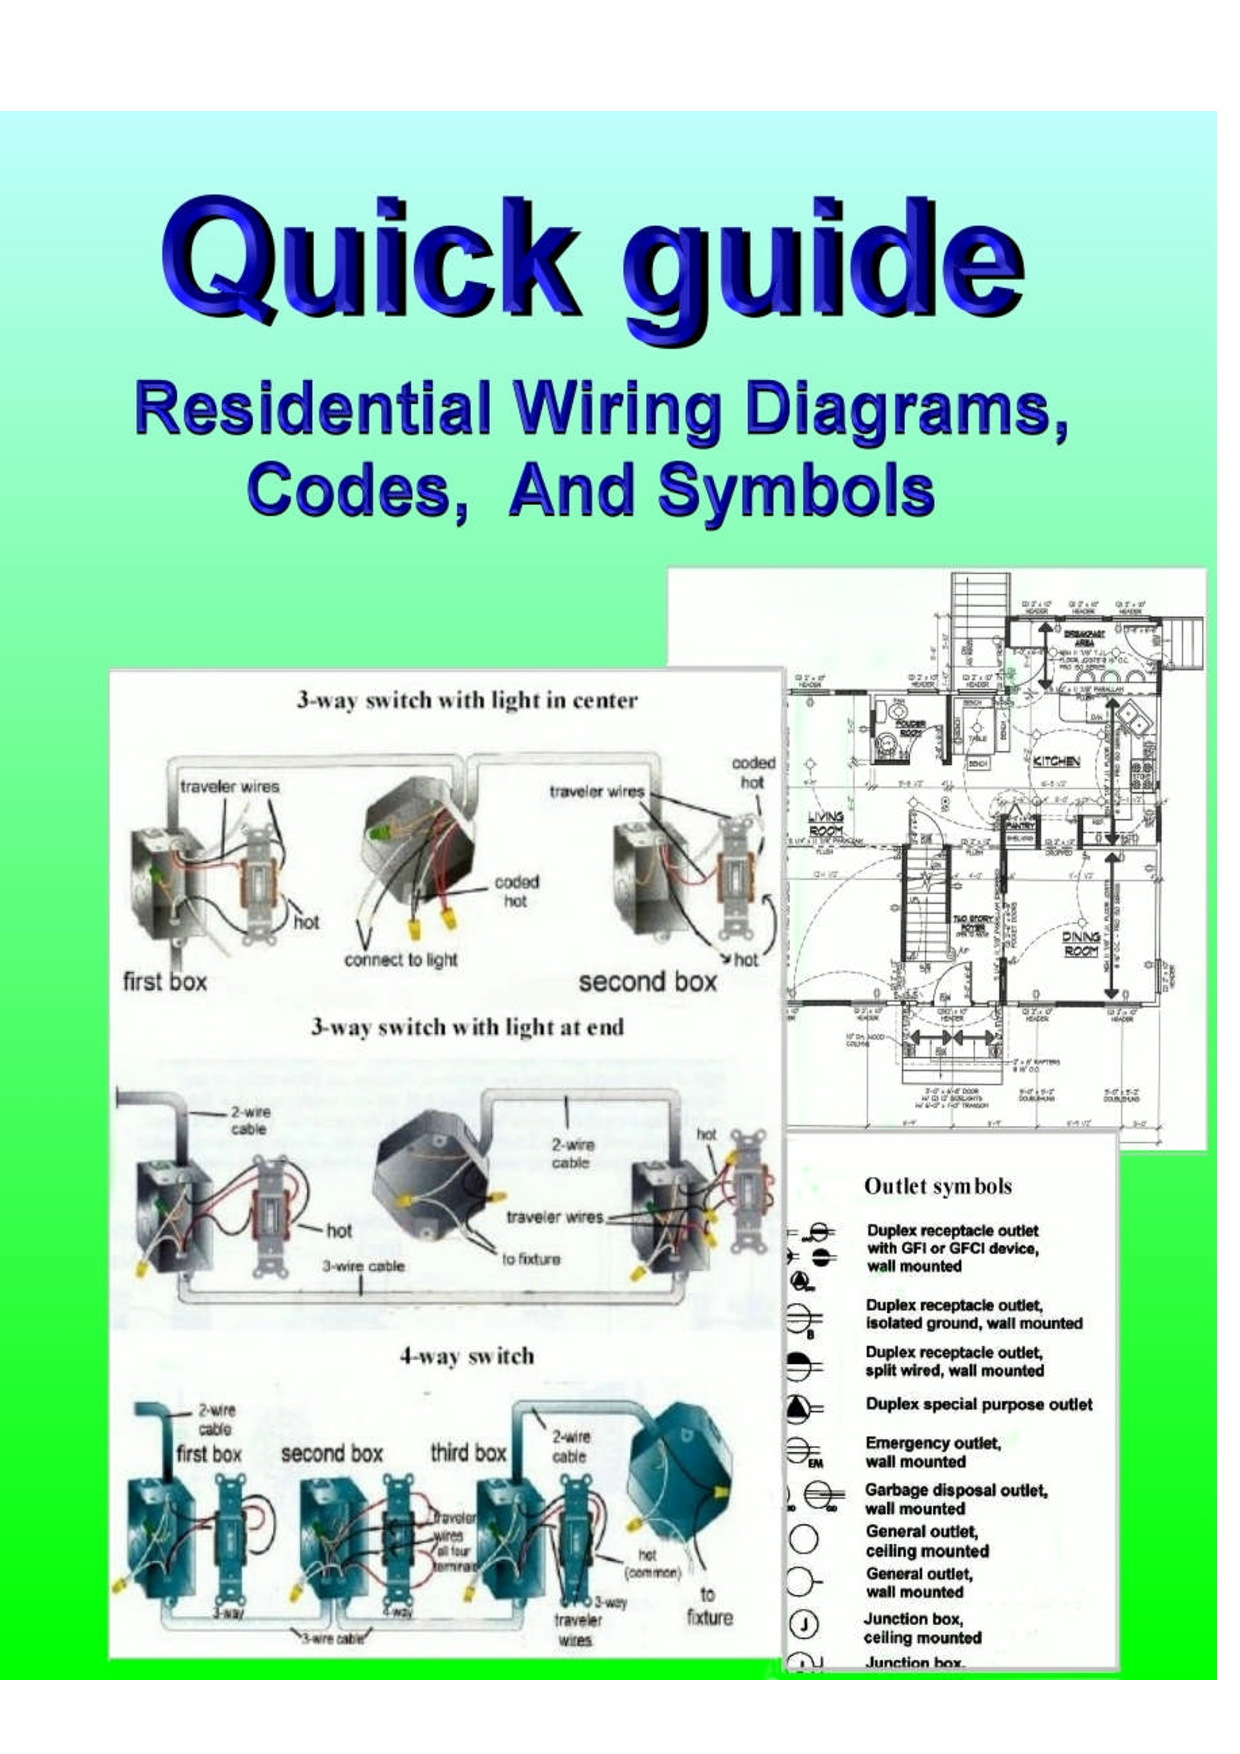 electrical wiring diagrams residential pdf wiring diagram schematics junction box fuse diagram junction box wiring diagram pdf [ 1240 x 1754 Pixel ]